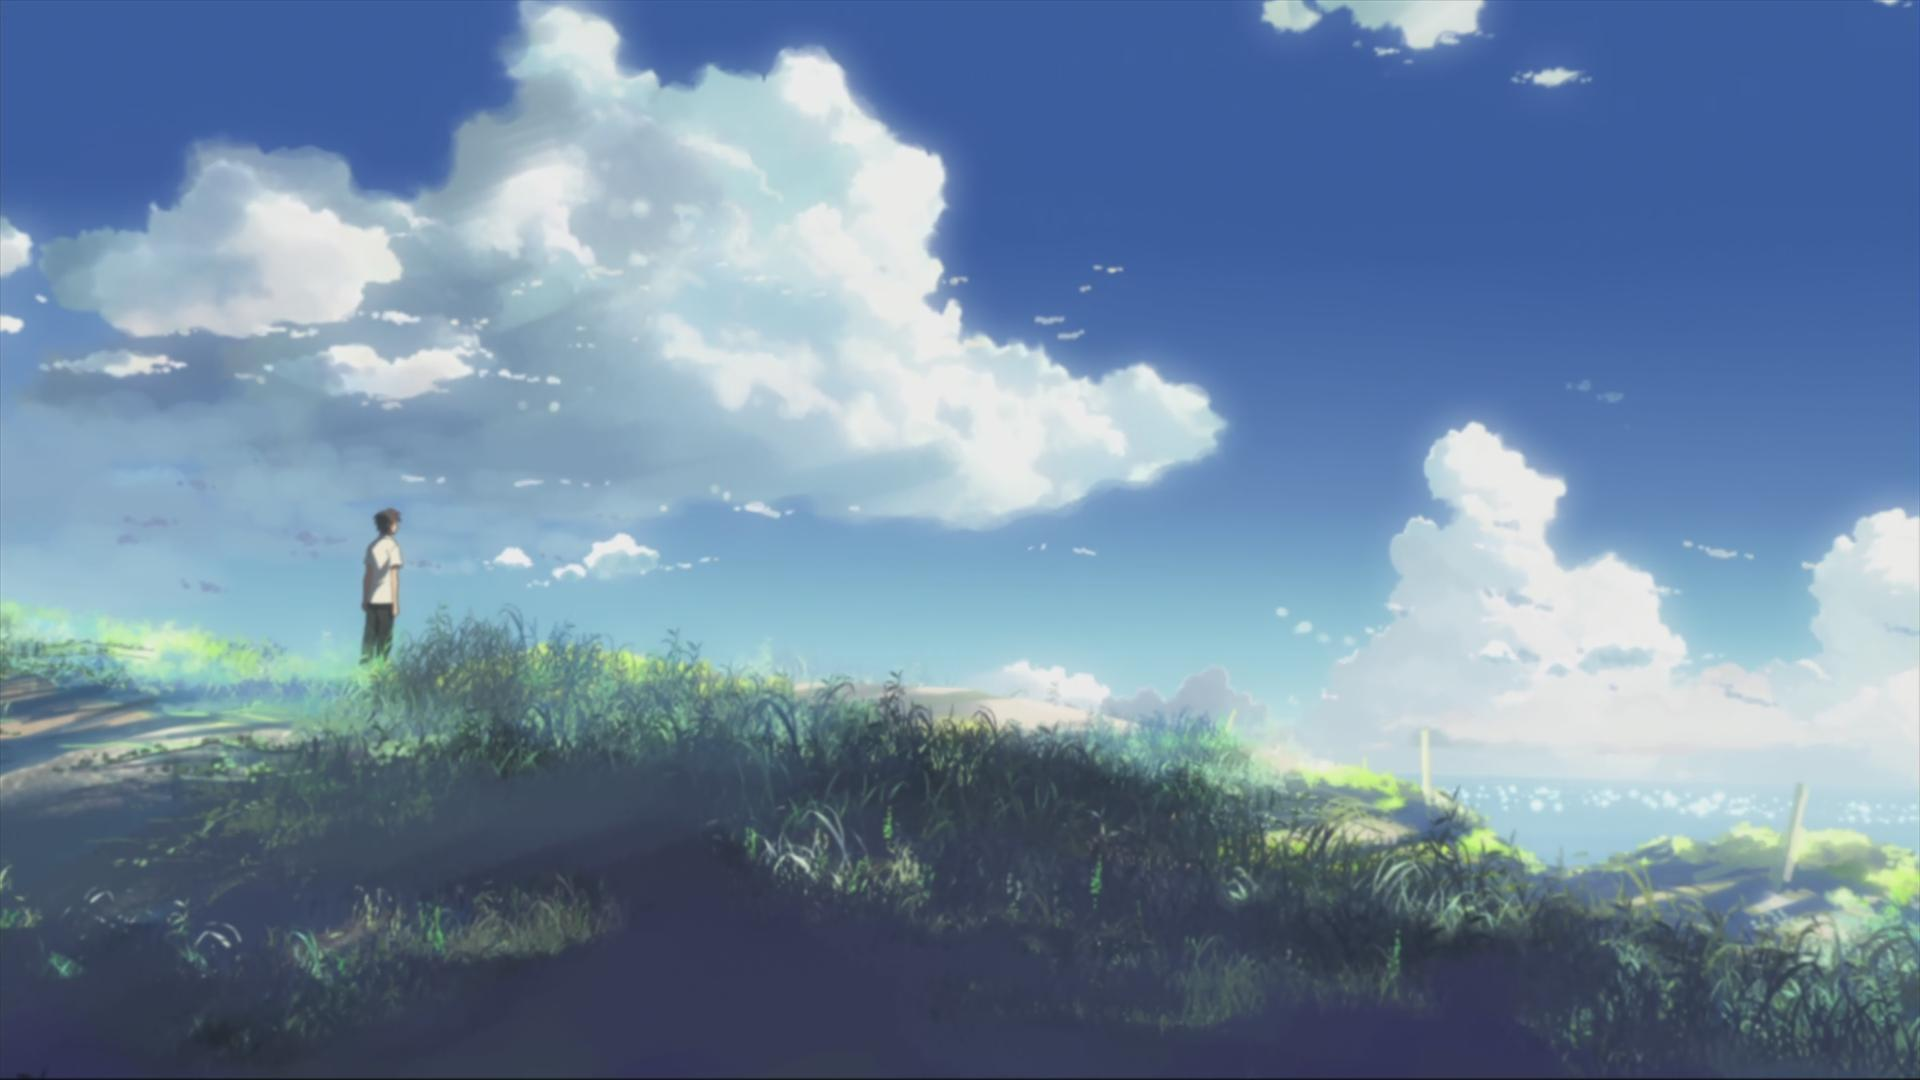 5 Centimeters Per Second 5 Centimeters Per Second Wallpaper